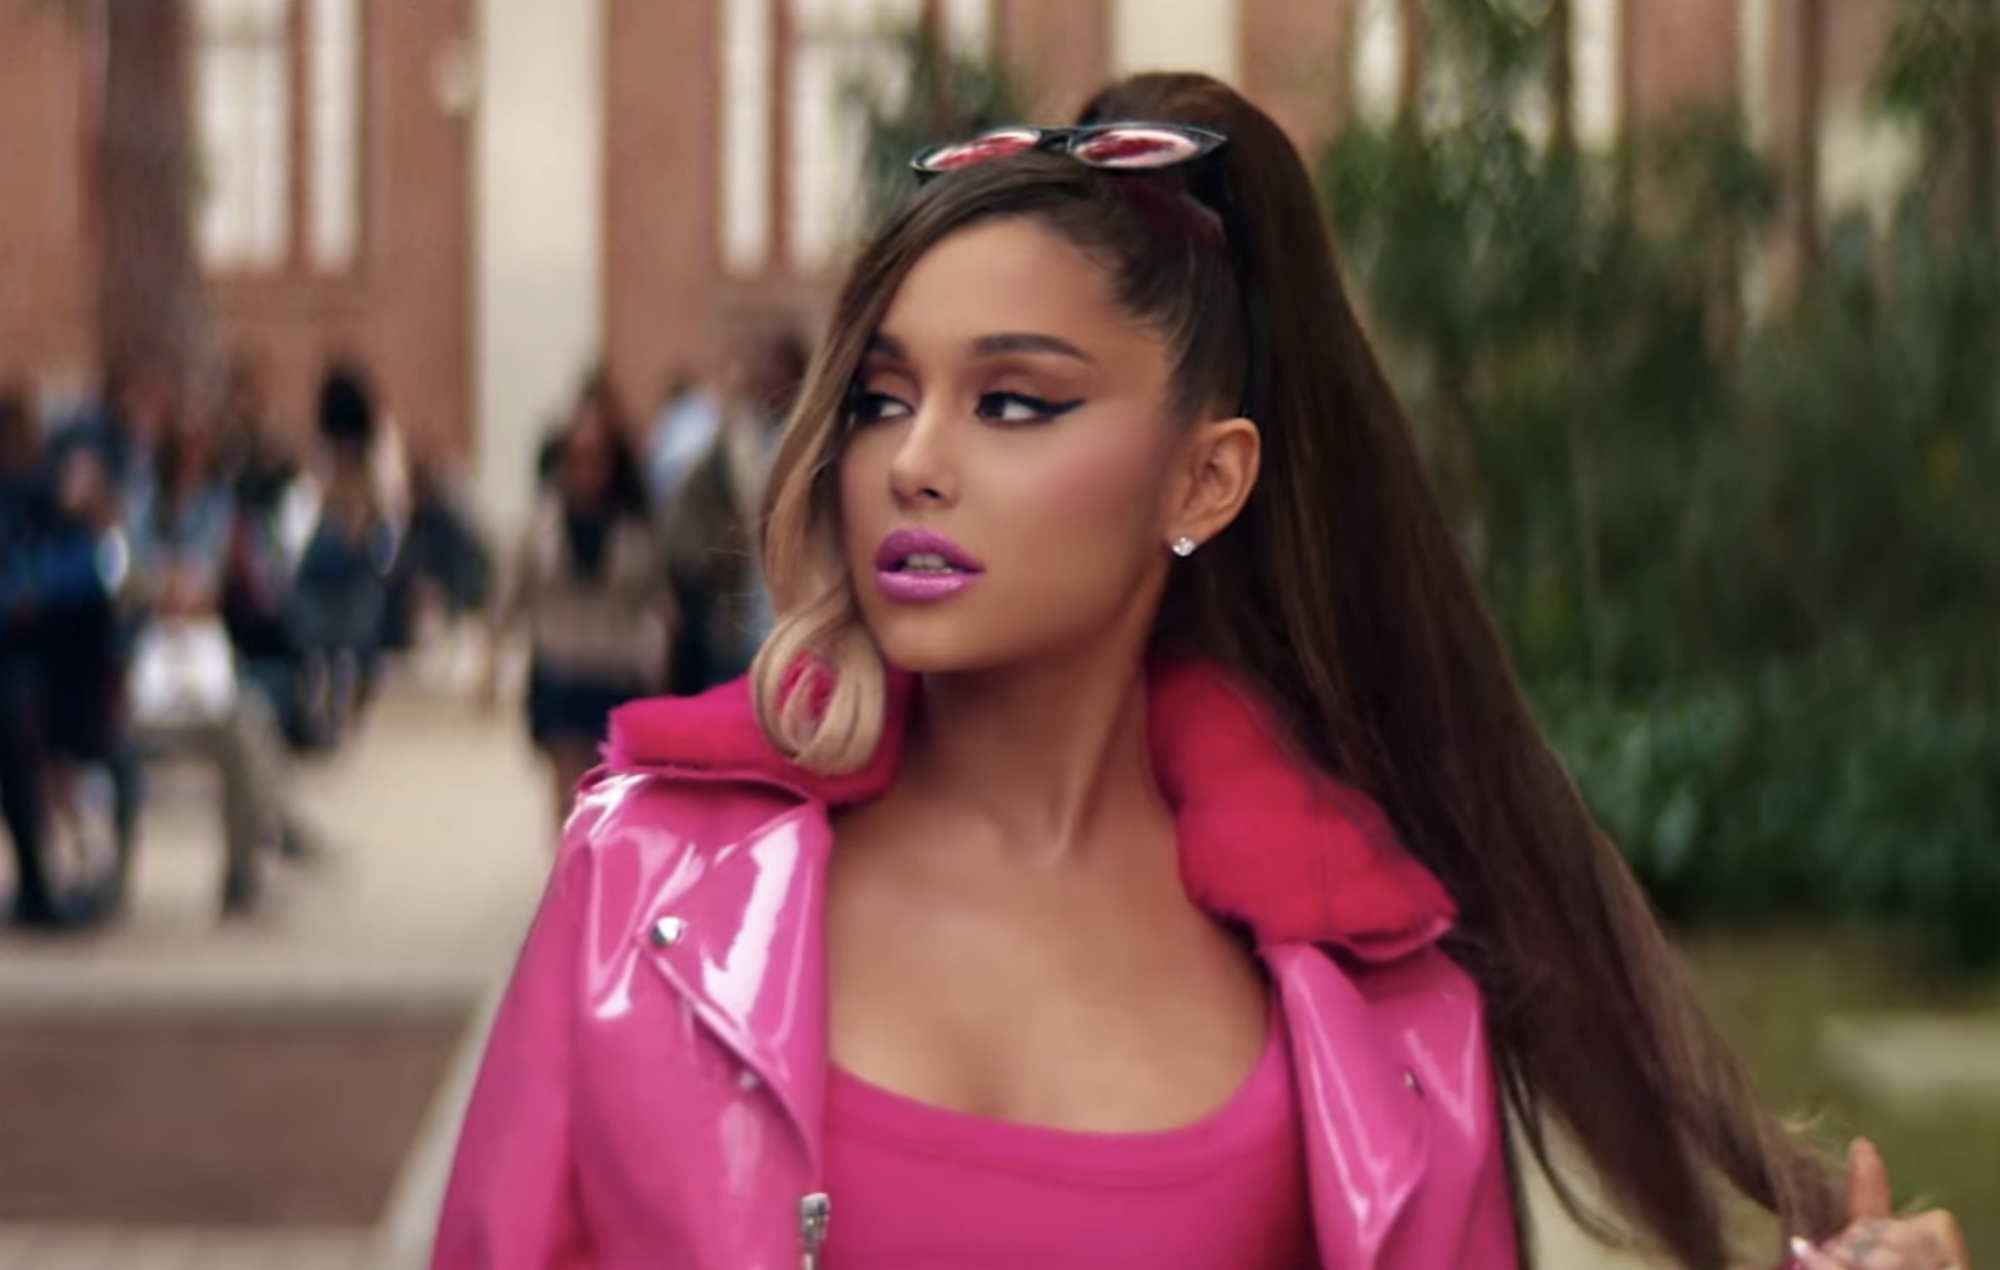 Kris Jenner offers chlamydia advice in Ariana Grande's blooper reel and deleted scenes from 'thank u, next' video